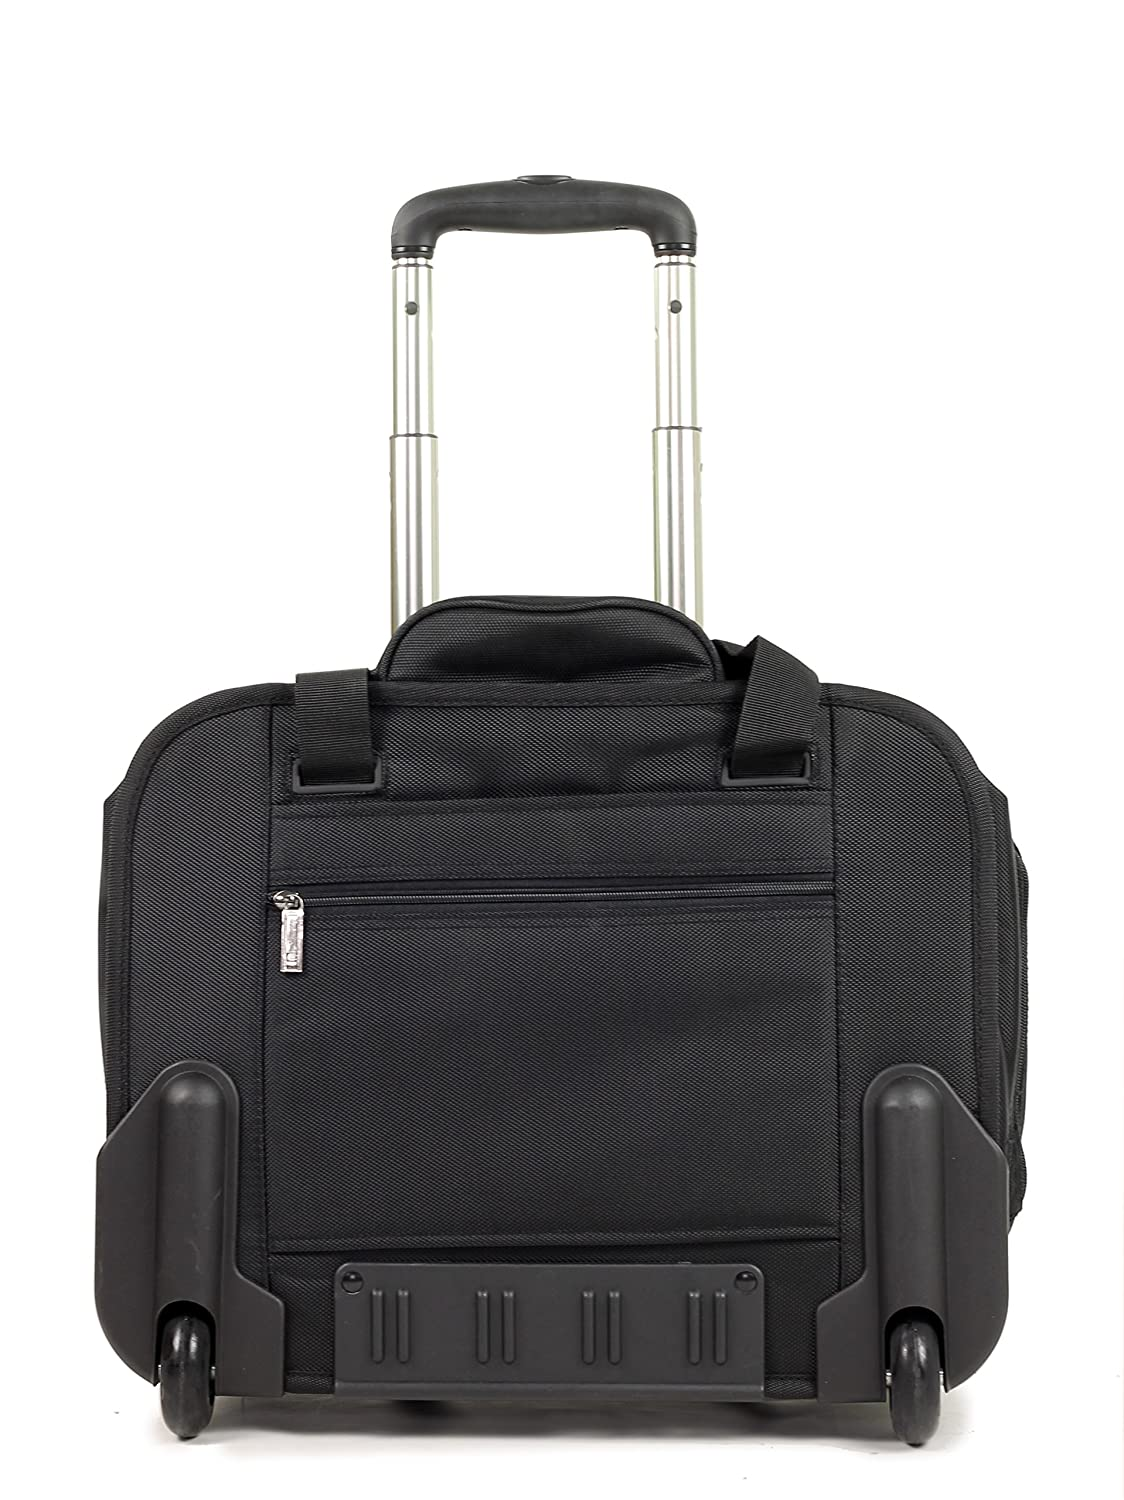 a57c8d60770c Cellini Laptop Trolley Cabin Bag   Business Case on Wheels  Amazon.co.uk   Luggage